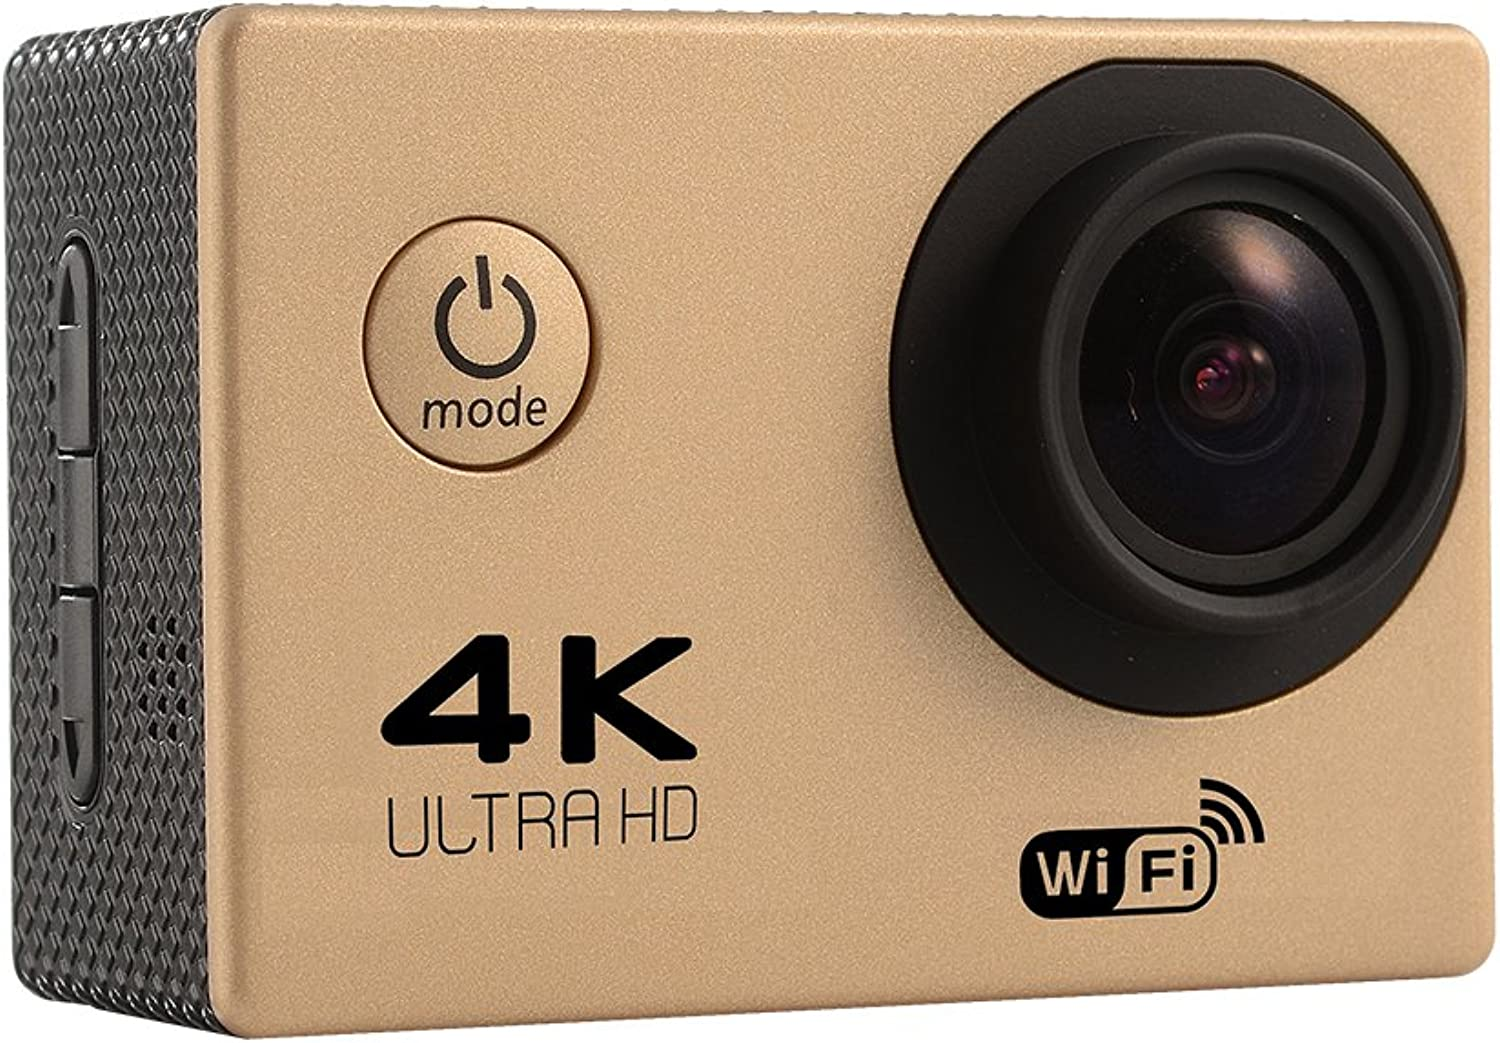 Sports Action Cam Camera Waterproof 4K WiFi HD 1080P Ultra Sports Digital DVR Cam Camcorder 2.0 inch LCD Screen (gold)